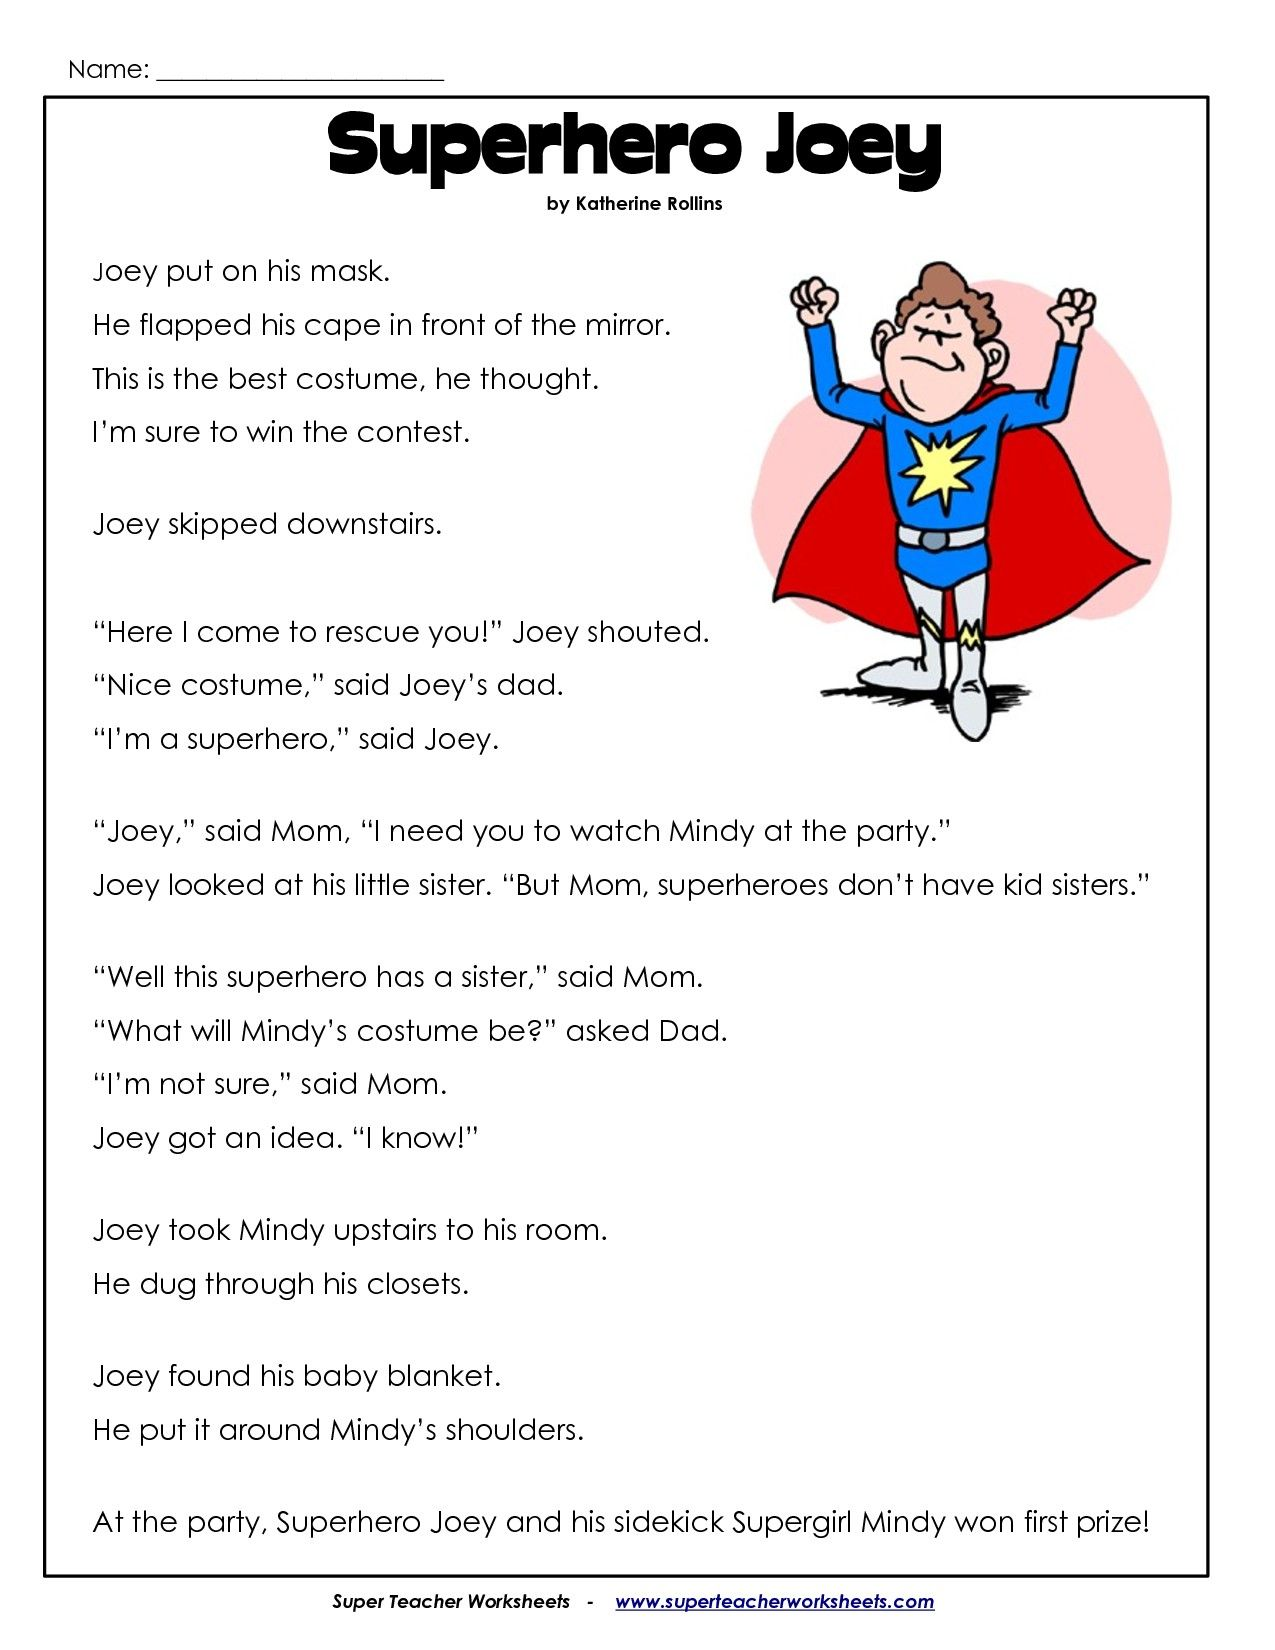 Second Grade Reading Comprehension Worksheets Kiduls Printable Reading Worksheets 2nd Grade Reading Worksheets 2nd Grade Reading